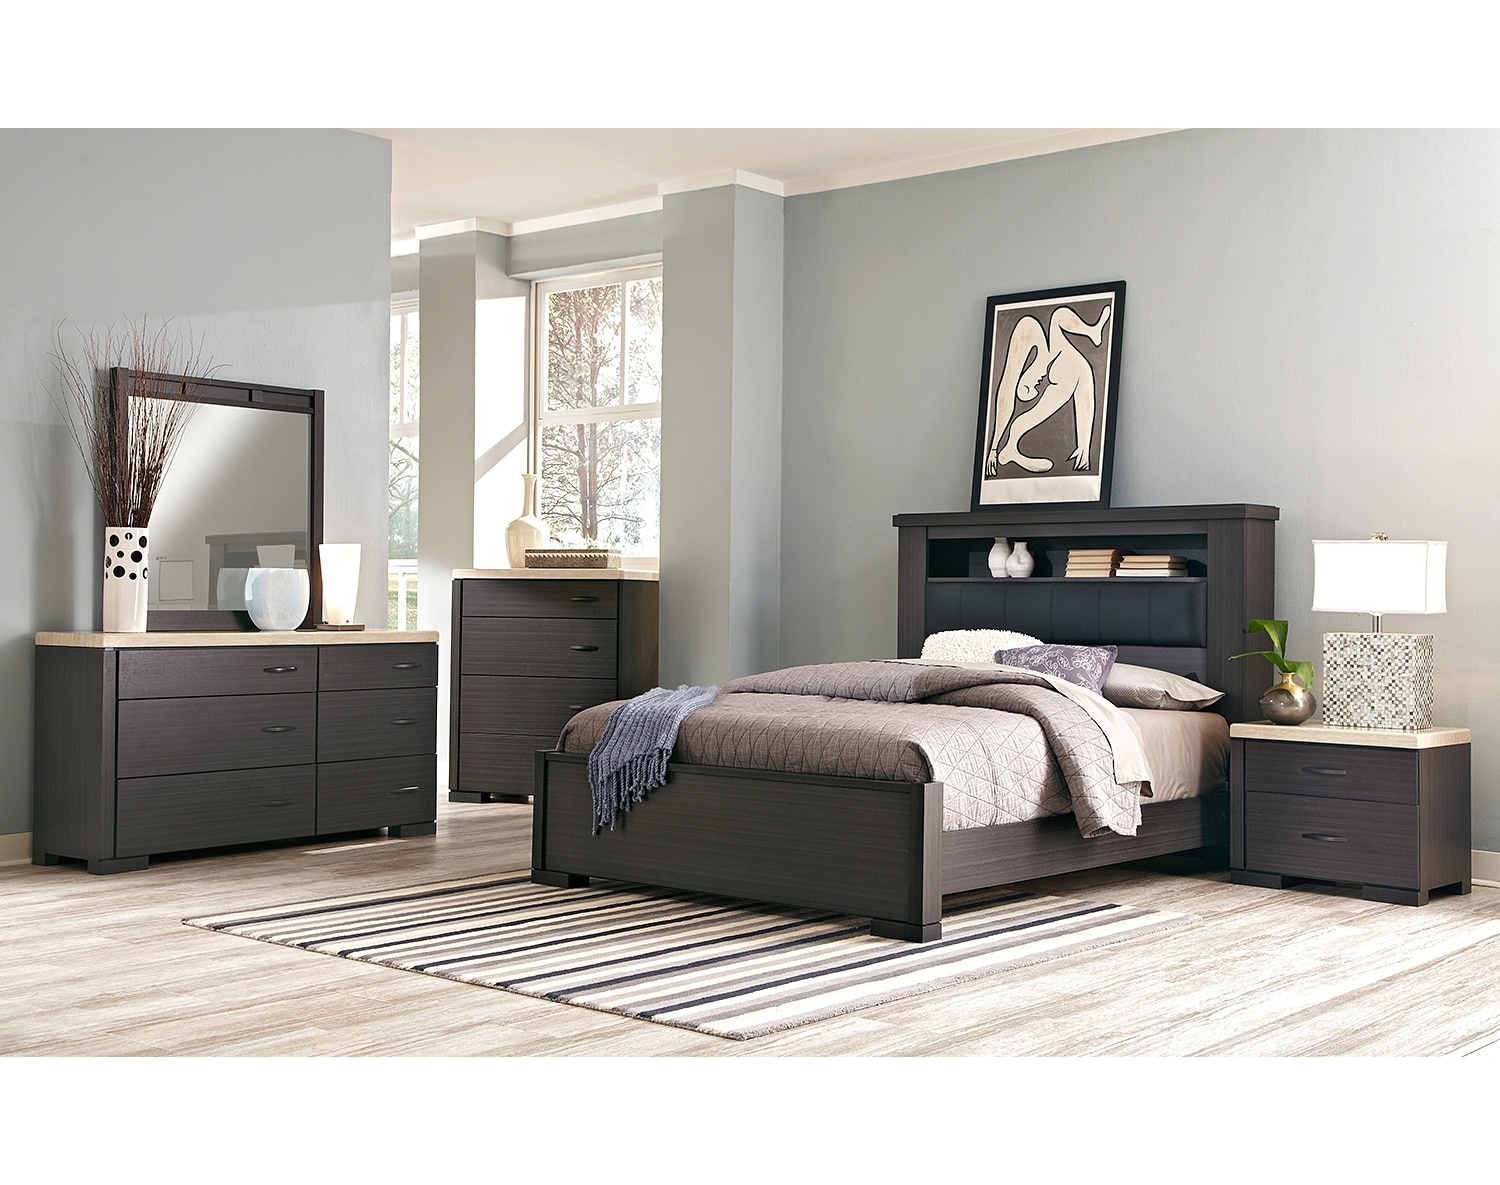 The Camino Collection Value City Furniture